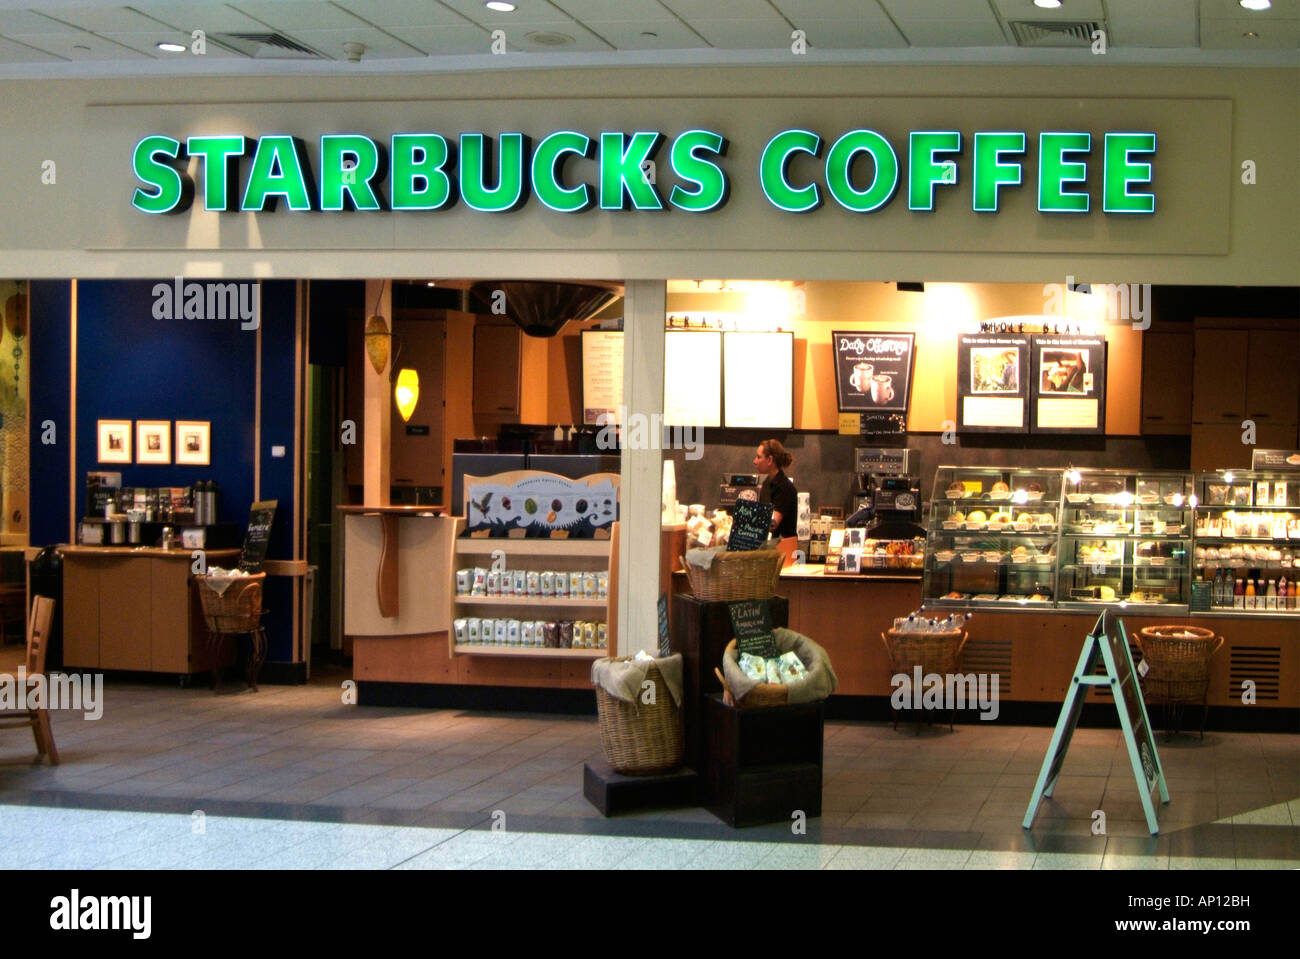 starbucks coffee caf fast food outlet table chair self service rest stock photo royalty free. Black Bedroom Furniture Sets. Home Design Ideas